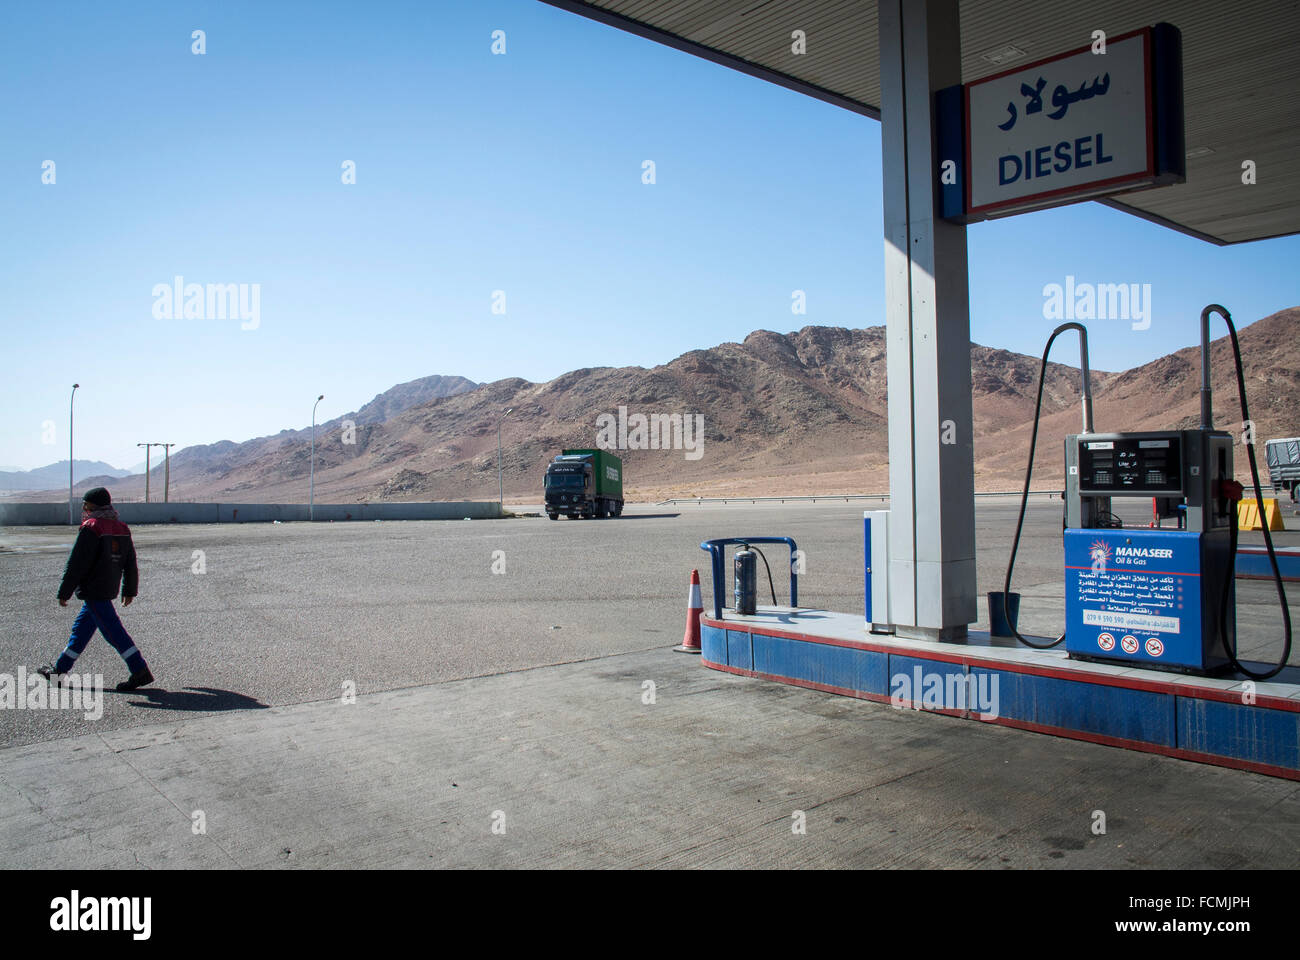 A petrol station on the road from Aqaba to Amman. Jordan. - Stock Image